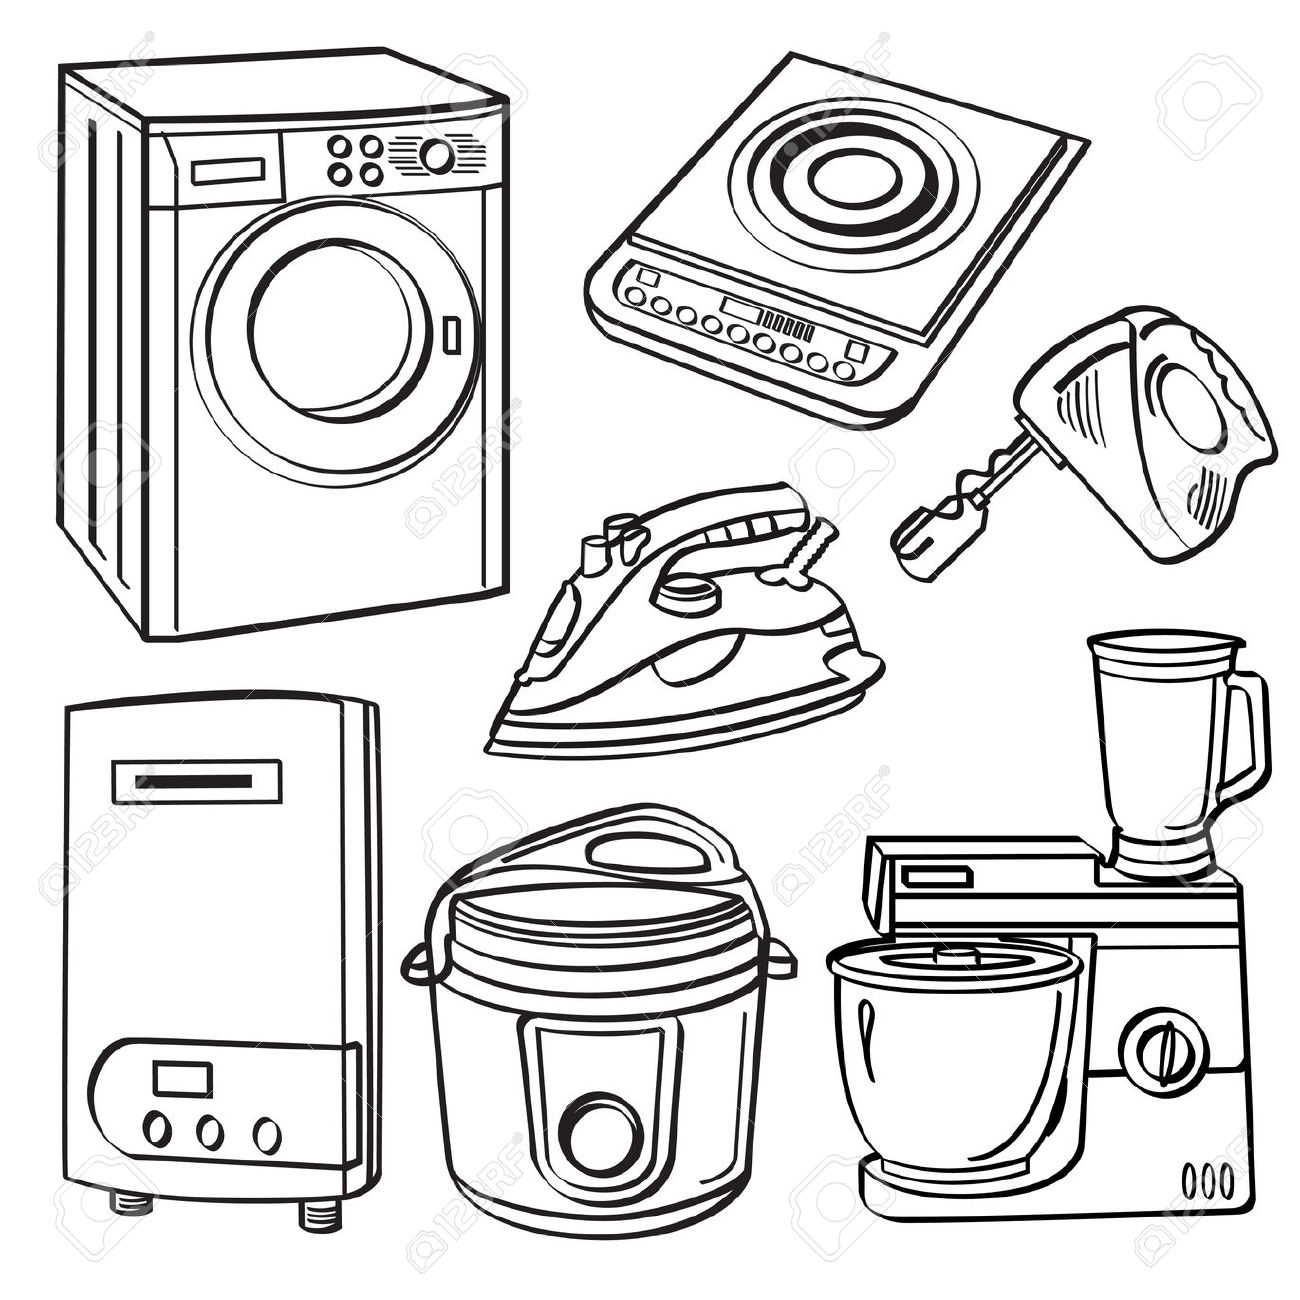 Electrical Appliances Clipart 20 Free Cliparts